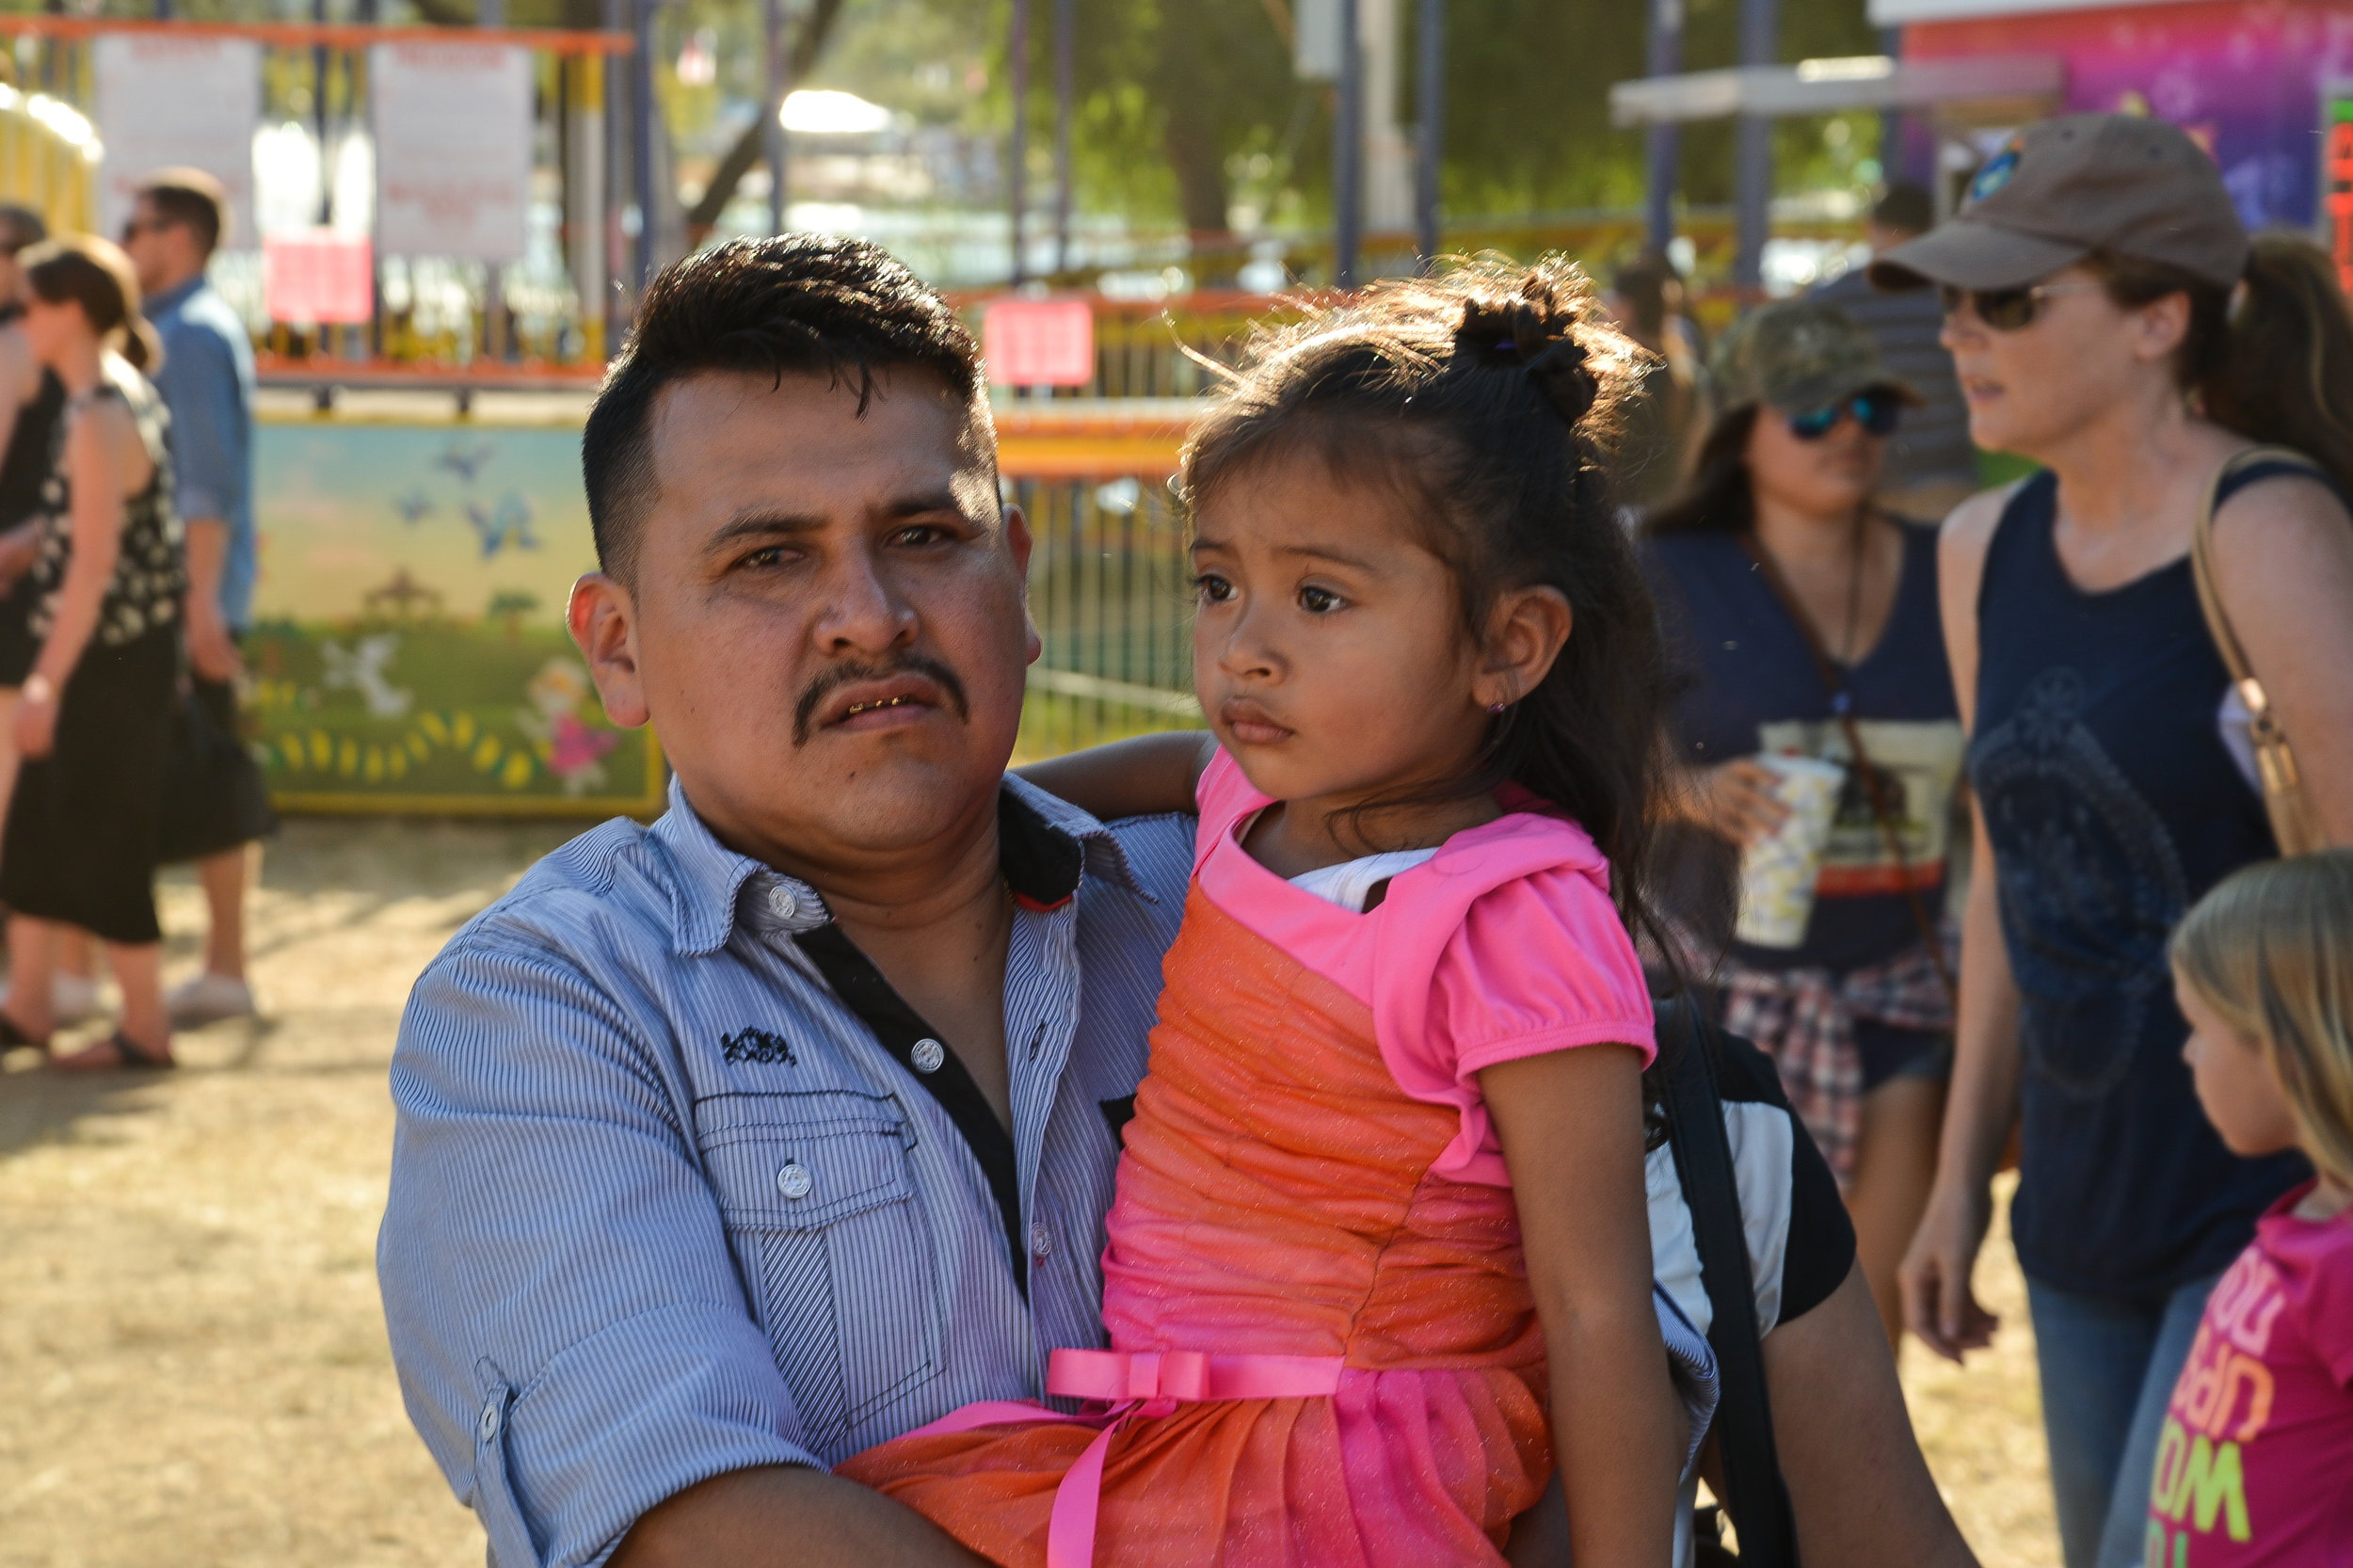 10-Dad-daughter-fair-2-0361.jpg